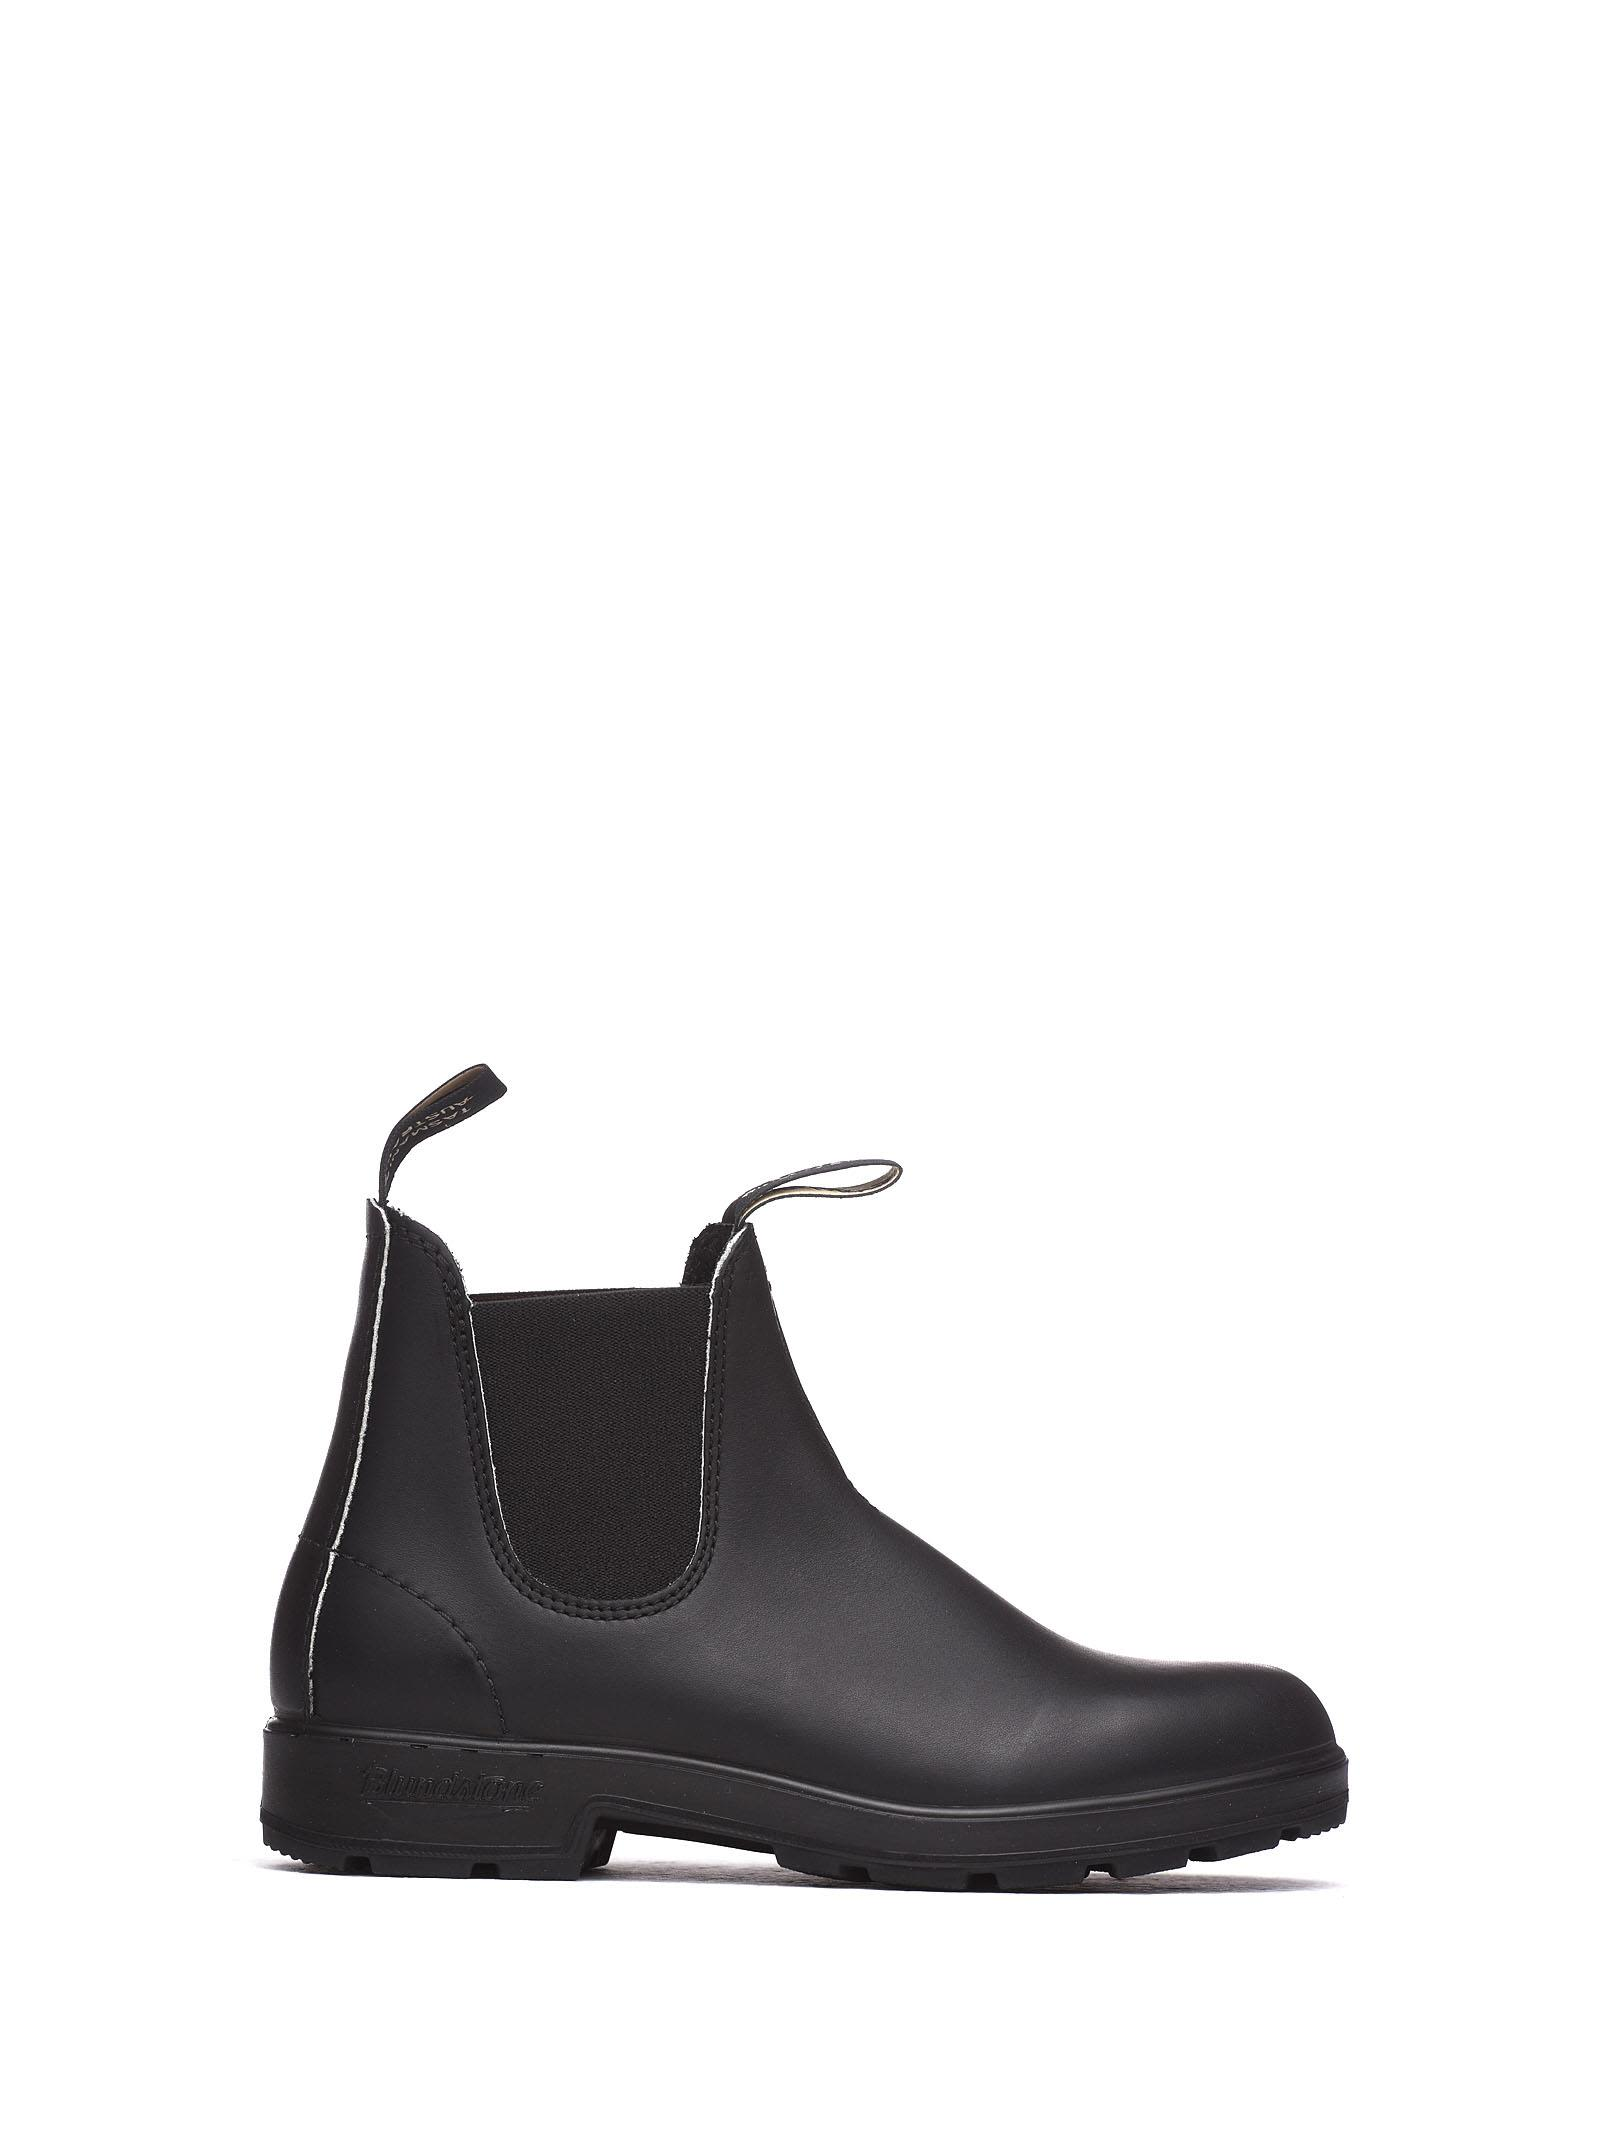 Blundstone BEATLES BALCK LEATHER BOOTS